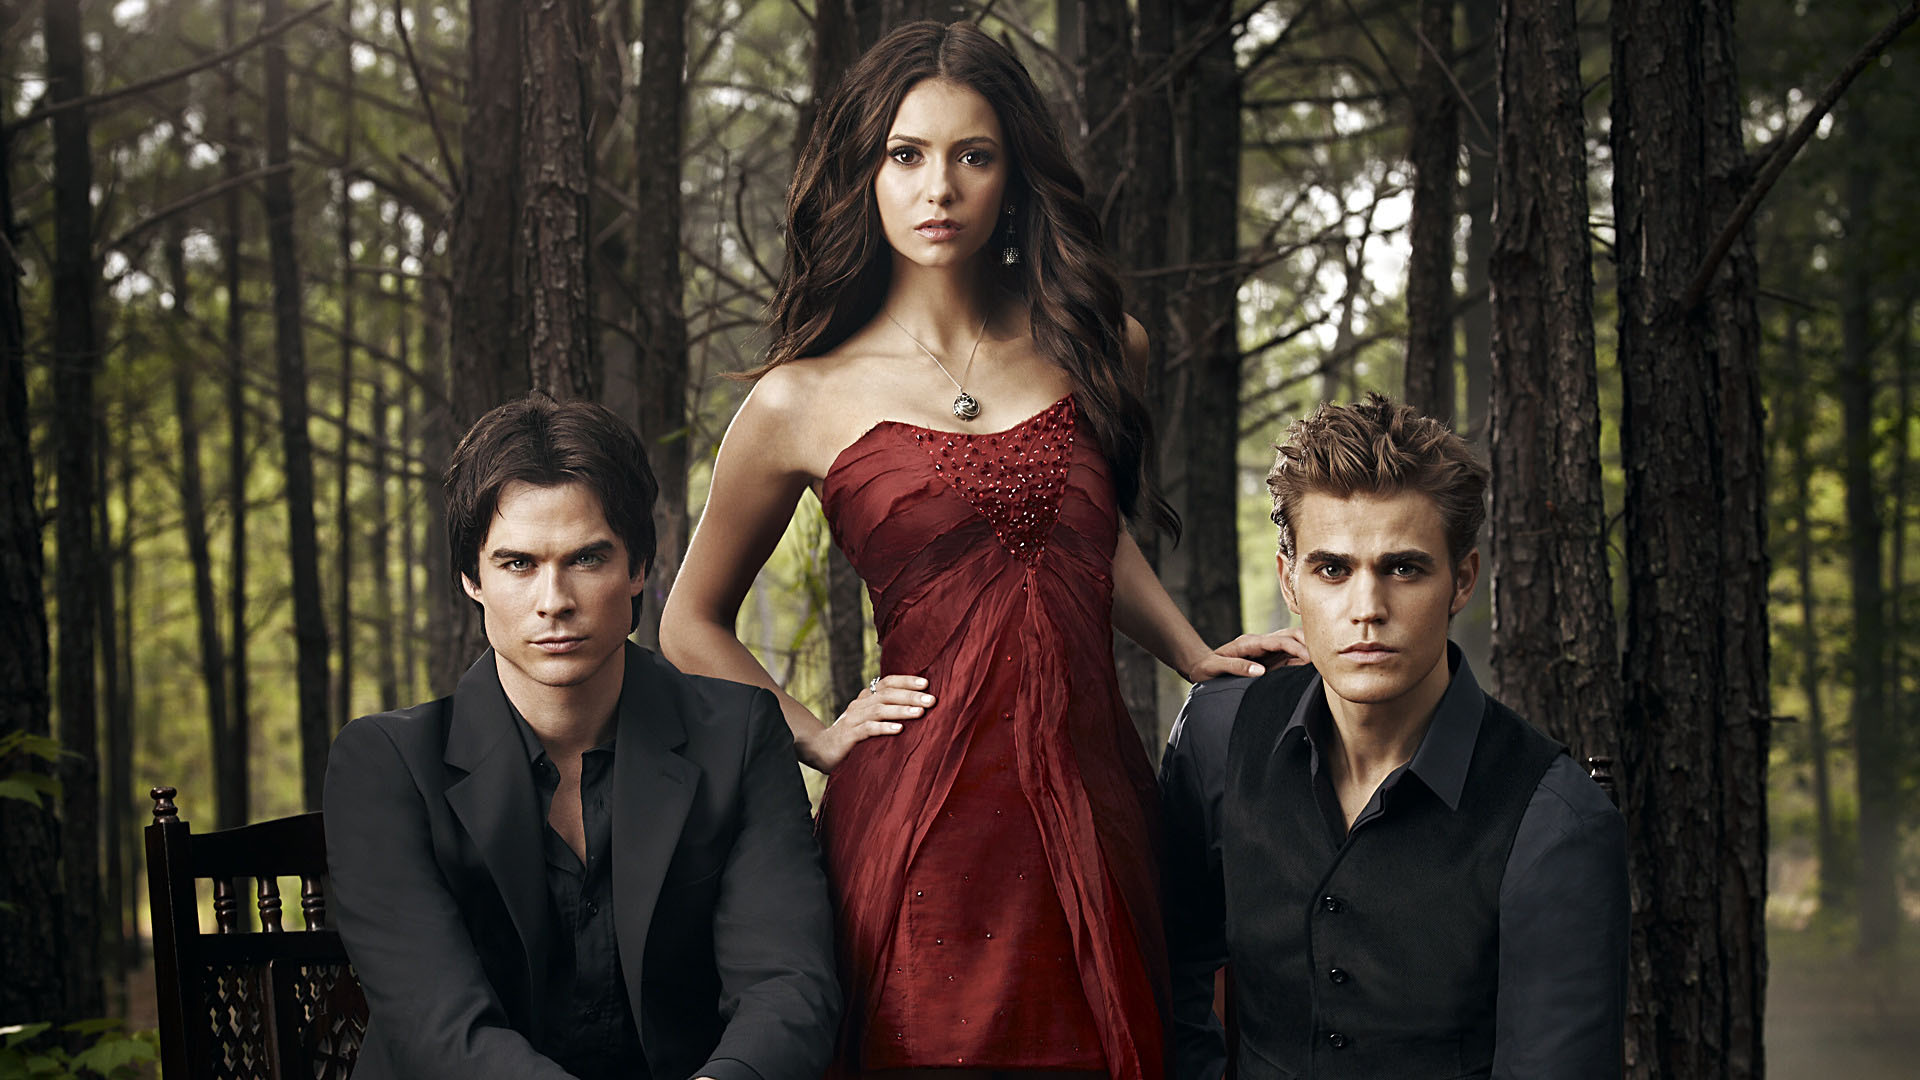 Paul Wesley The Vampire Diaries full HD images